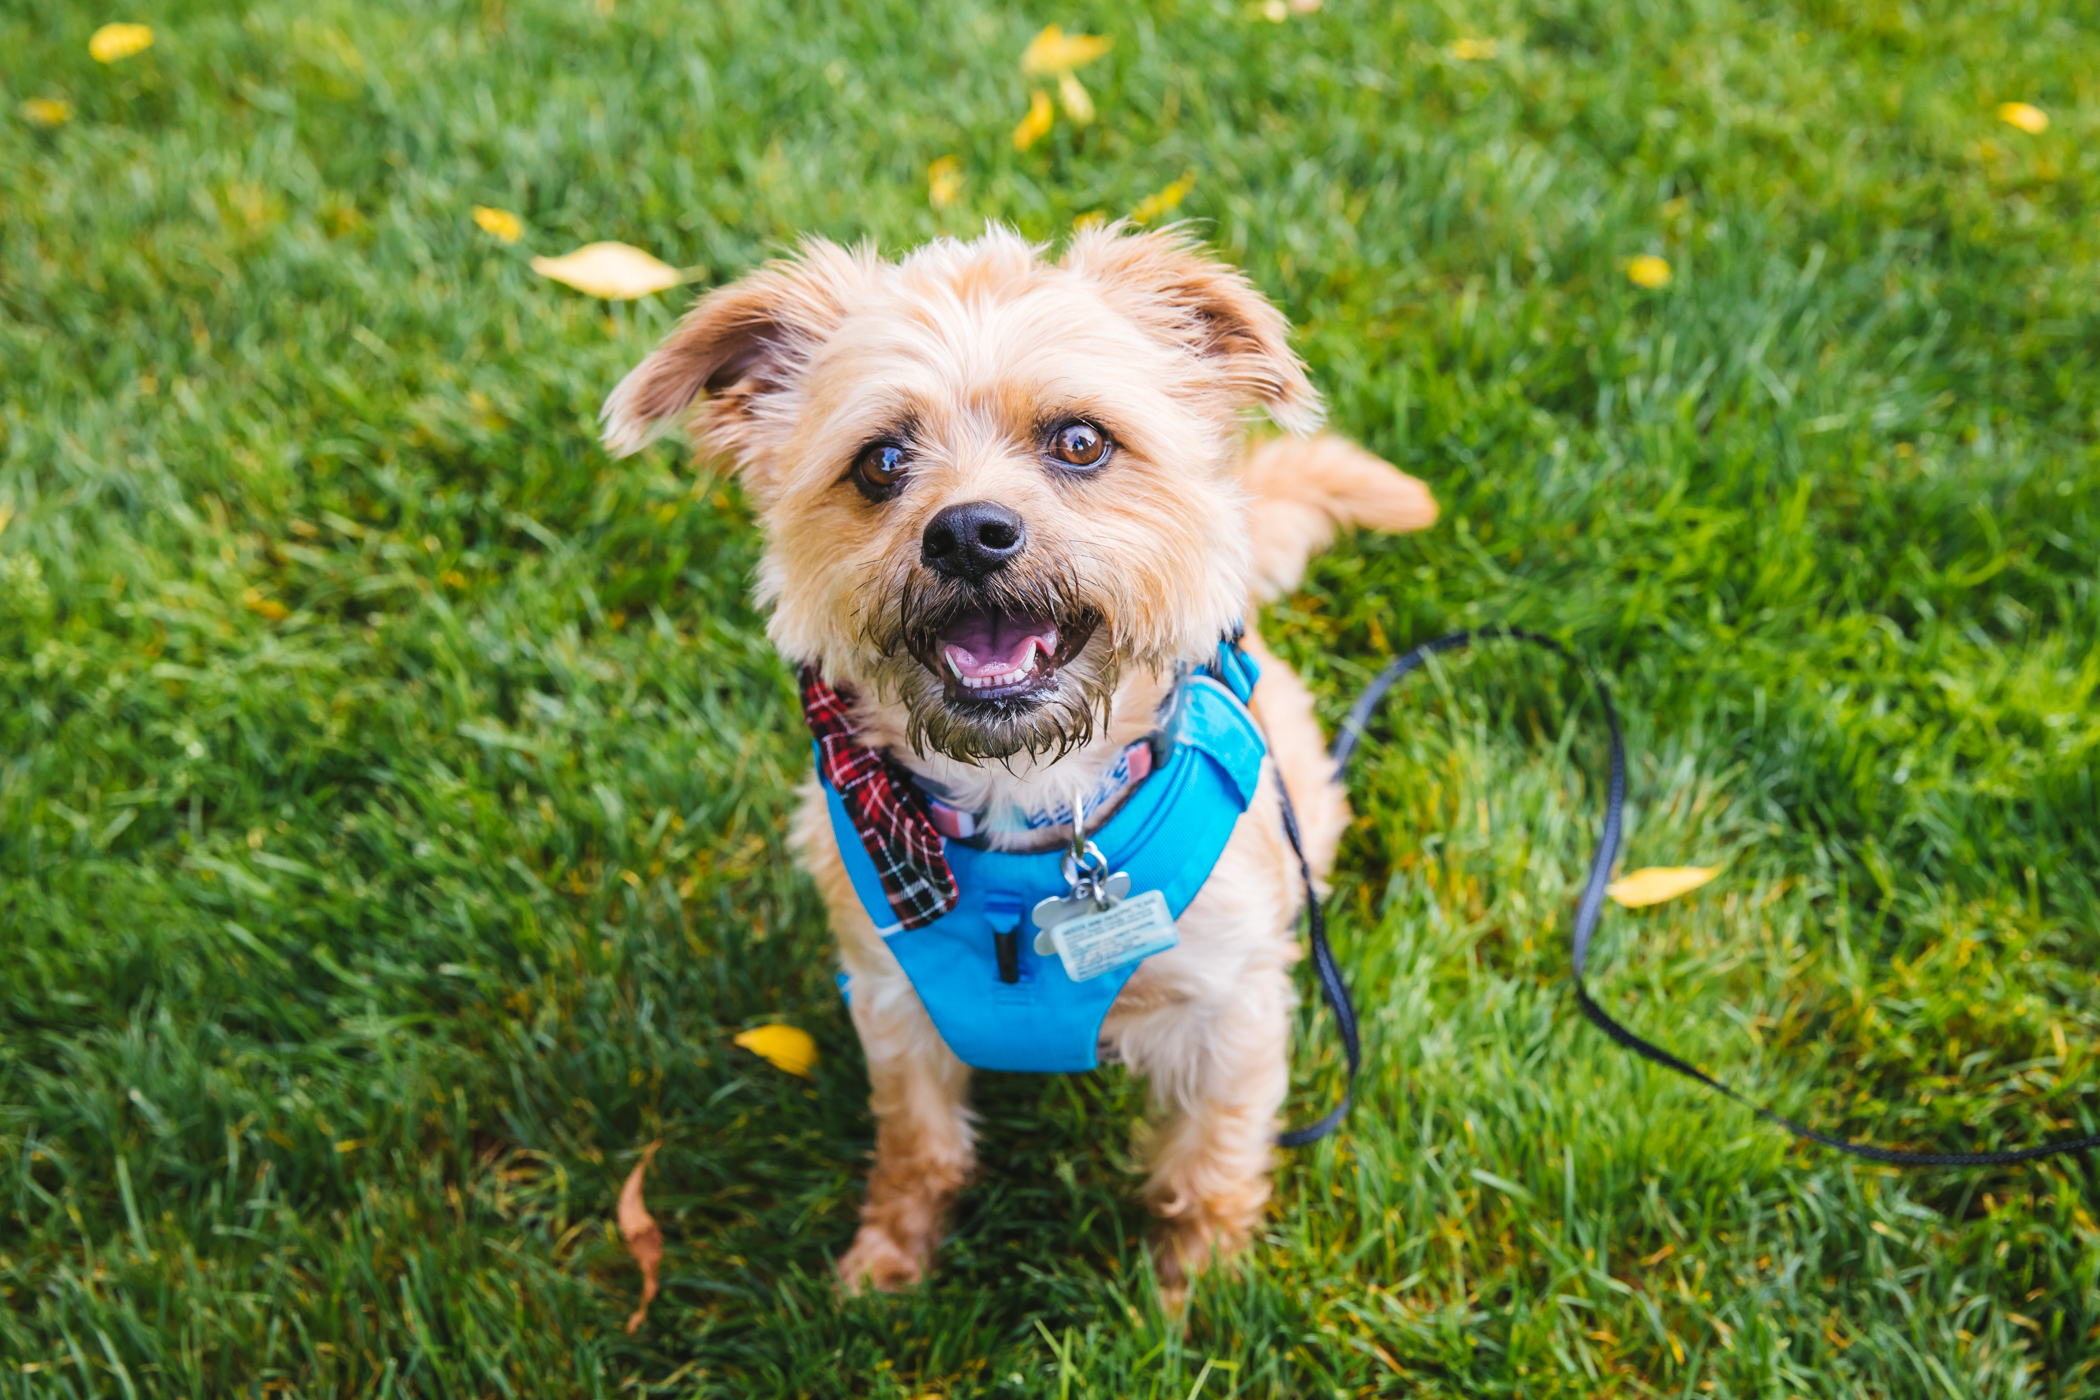 "Memphis is a 4-year-old terrier mix who loves cuddles, car rides, playing fetch & hide and seek. But he's not a big fan of taking a bath or lots of noise!{&nbsp;}<a  href=""http://seattlerefined.com/ruffined"" target=""_blank"" title=""http://seattlerefined.com/ruffined"">The RUFFined Spotlight</a>{&nbsp;}is a weekly profile of local pets living and loving life in the PNW. If you or someone you know has a pet you'd like featured, email us at{&nbsp;}<a  href=""mailto:hello@seattlerefined.com"" target=""_blank"" title=""mailto:hello@seattlerefined.com"">hello@seattlerefined.com</a>, and your furbaby could be the next spotlighted! (Image: Sunita Martini / Seattle Refined)"